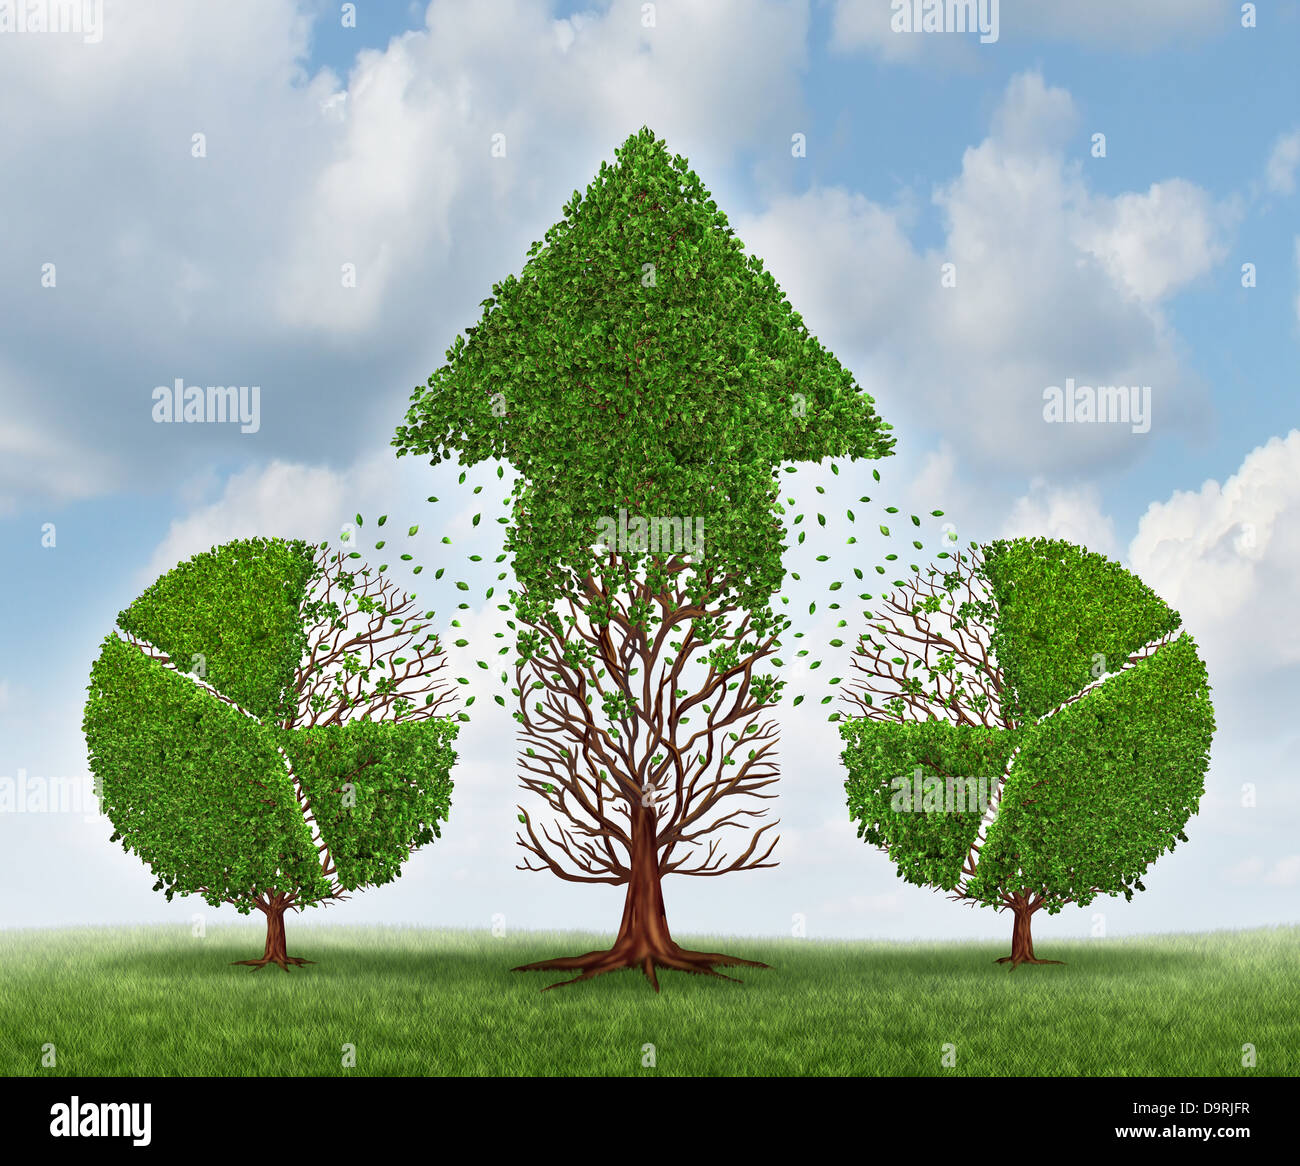 Finance Tree: Investing For Growth Business Concept With Trees Shaped As